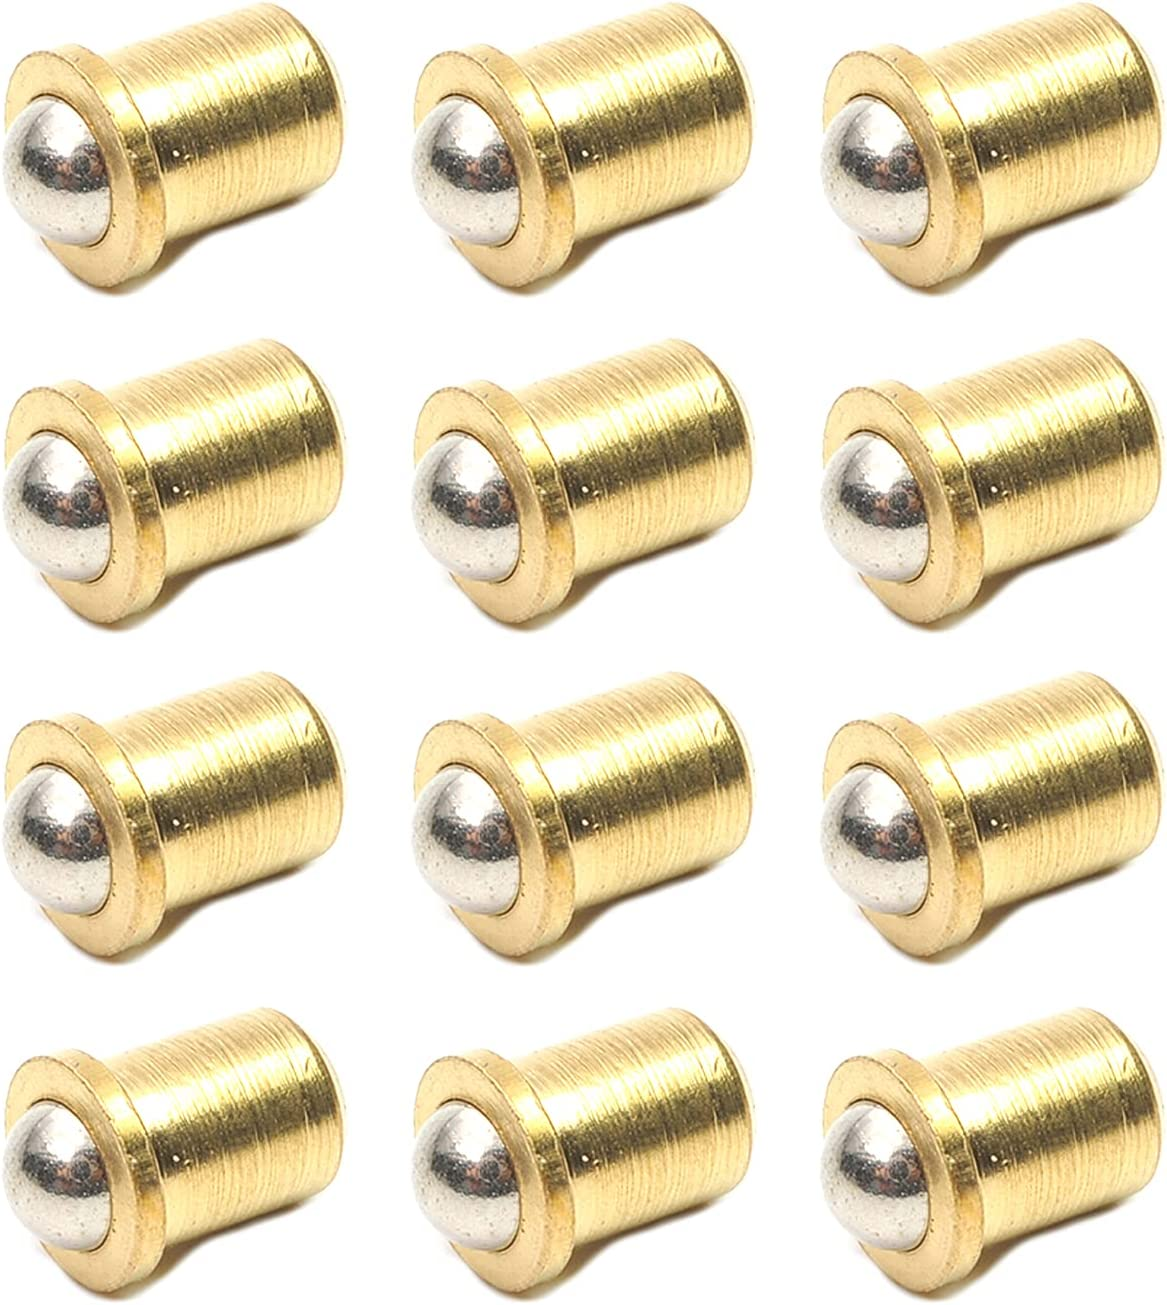 MroMax Max 85% OFF Ball Dia Brass Electroplating Catch Cabinet Door Lat Clearance SALE! Limited time!